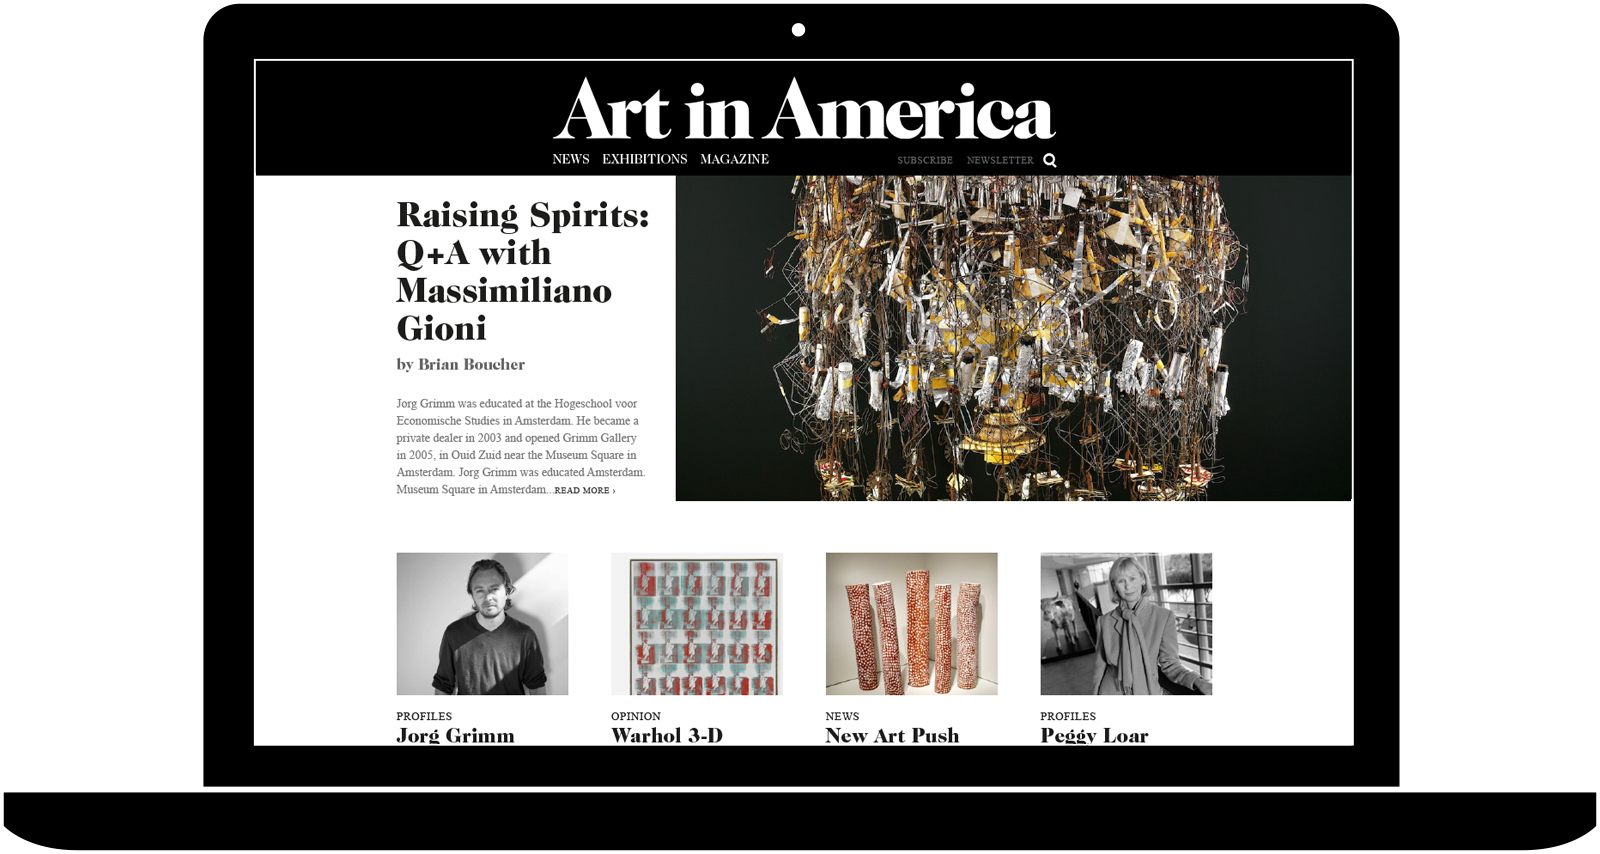 Stéphane Elbaz, Art in America website, 2013